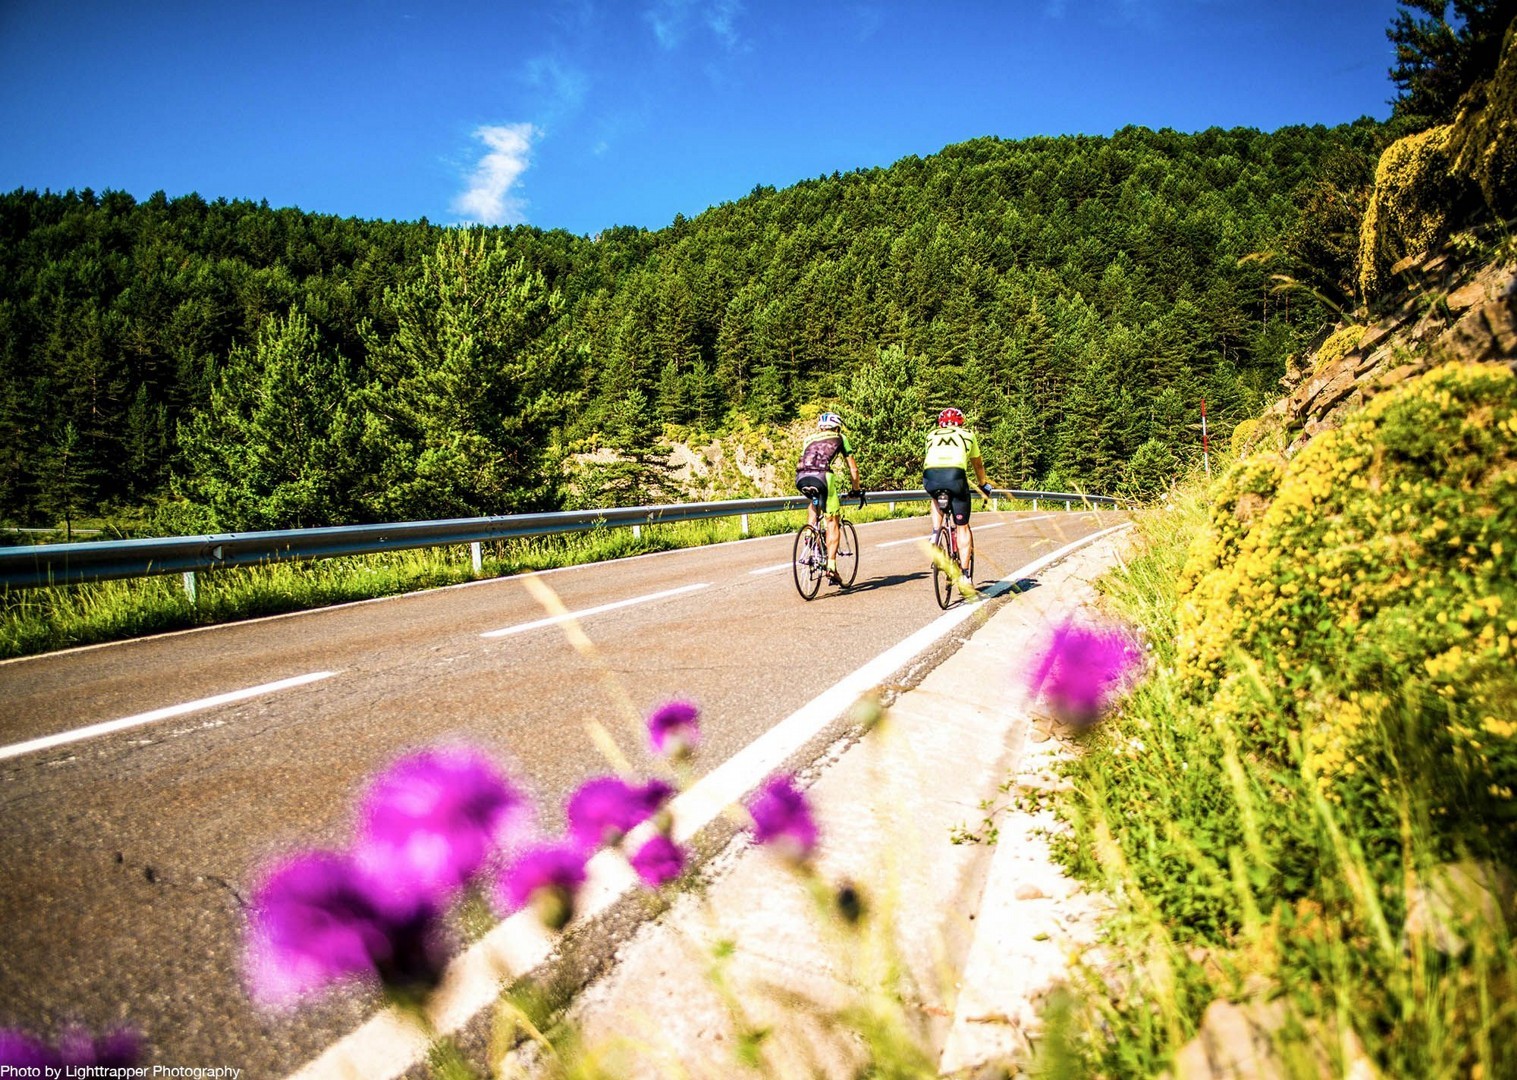 road-cycling-holiday-france-week-pyrenees-saddle-skedaddle.jpg - France - Pyrenees Fitness Week (Grade 2-3) - Guided Road Cycling Holiday - Road Cycling